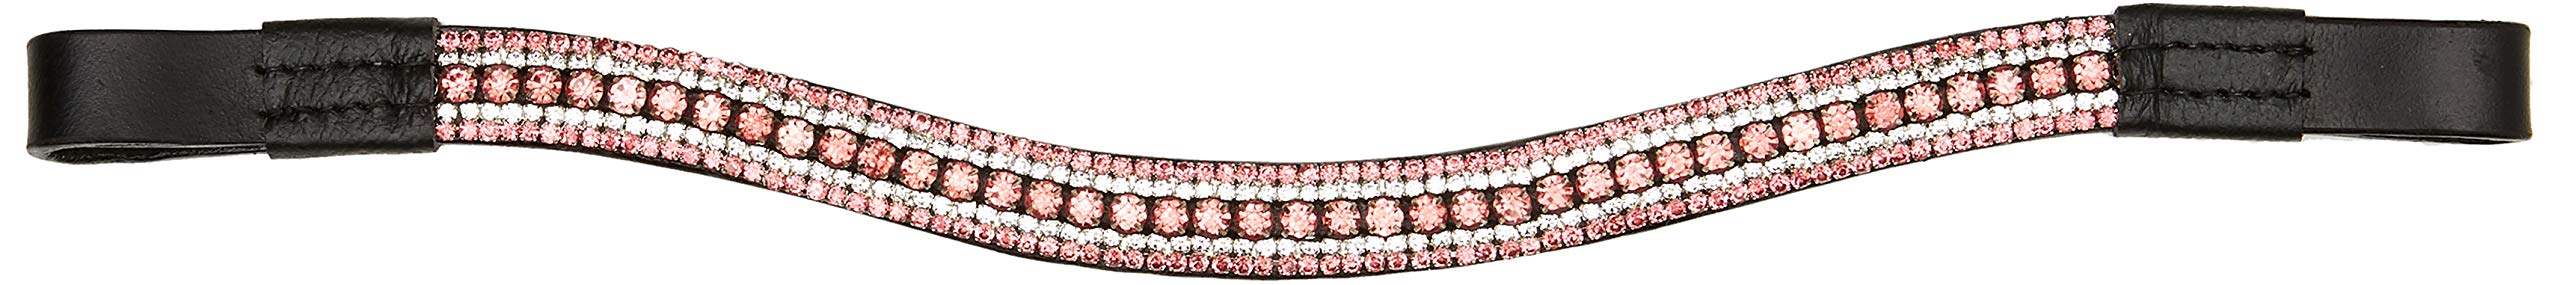 Cwell Equine Dressage Crystal Bling 5 Rows Crystal Browband Pink Crystal Rhinestones Sparkly Black (Pony 14'')